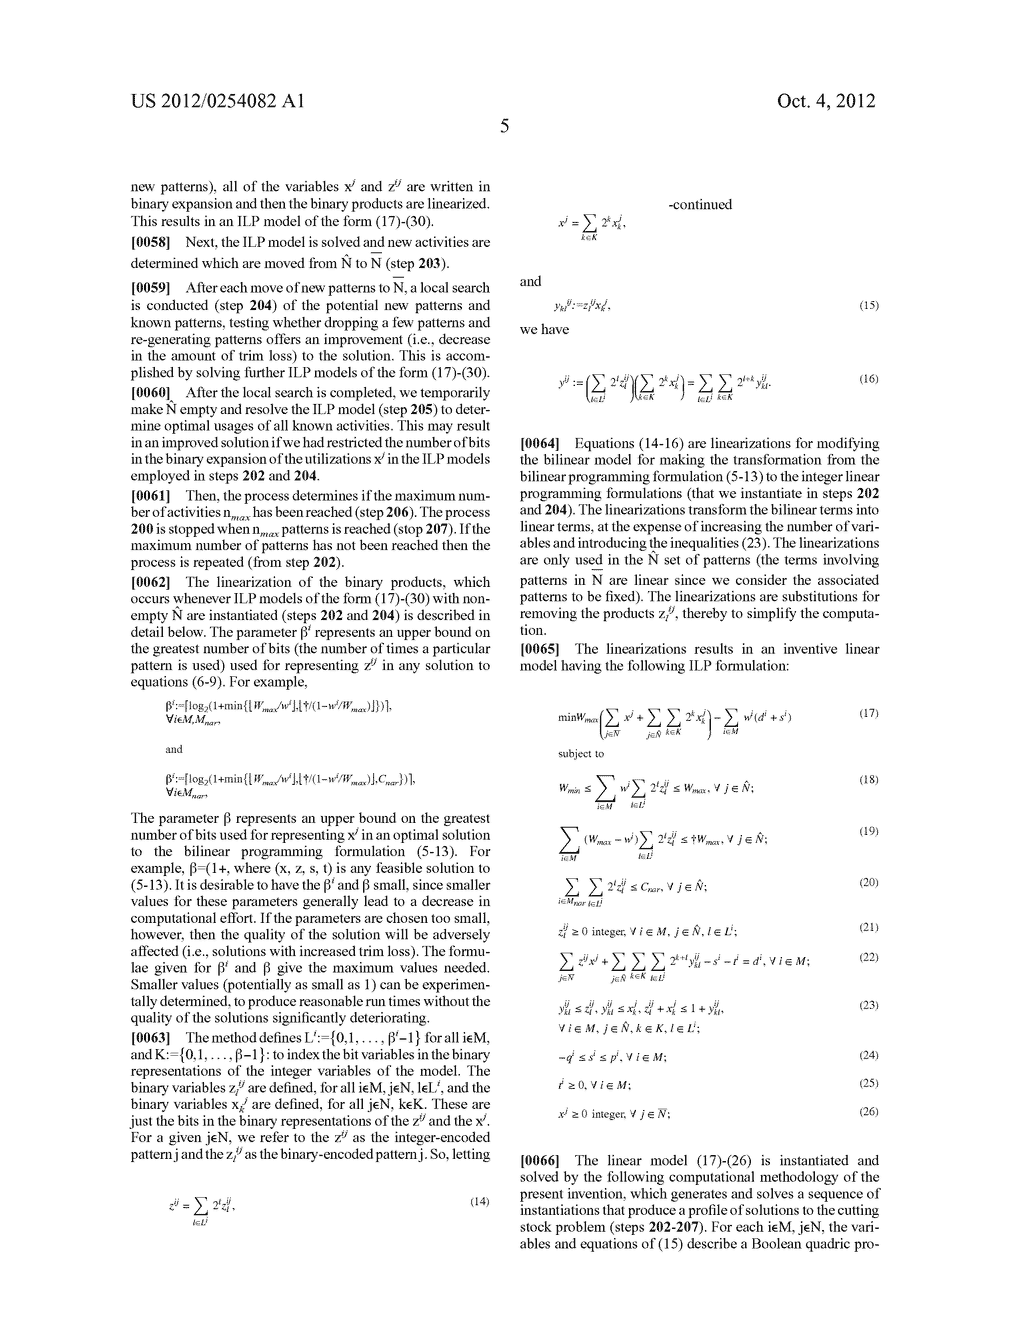 METHOD AND APPARATUS FOR GENERATING PROFILE OF SOLUTIONS TRADING OFF     NUMBER OF ACTIVITIES UTILIZED AND OBJECTIVE VALUE FOR BILINEAR INTEGER     OPTIMIZATION MODELS - diagram, schematic, and image 13